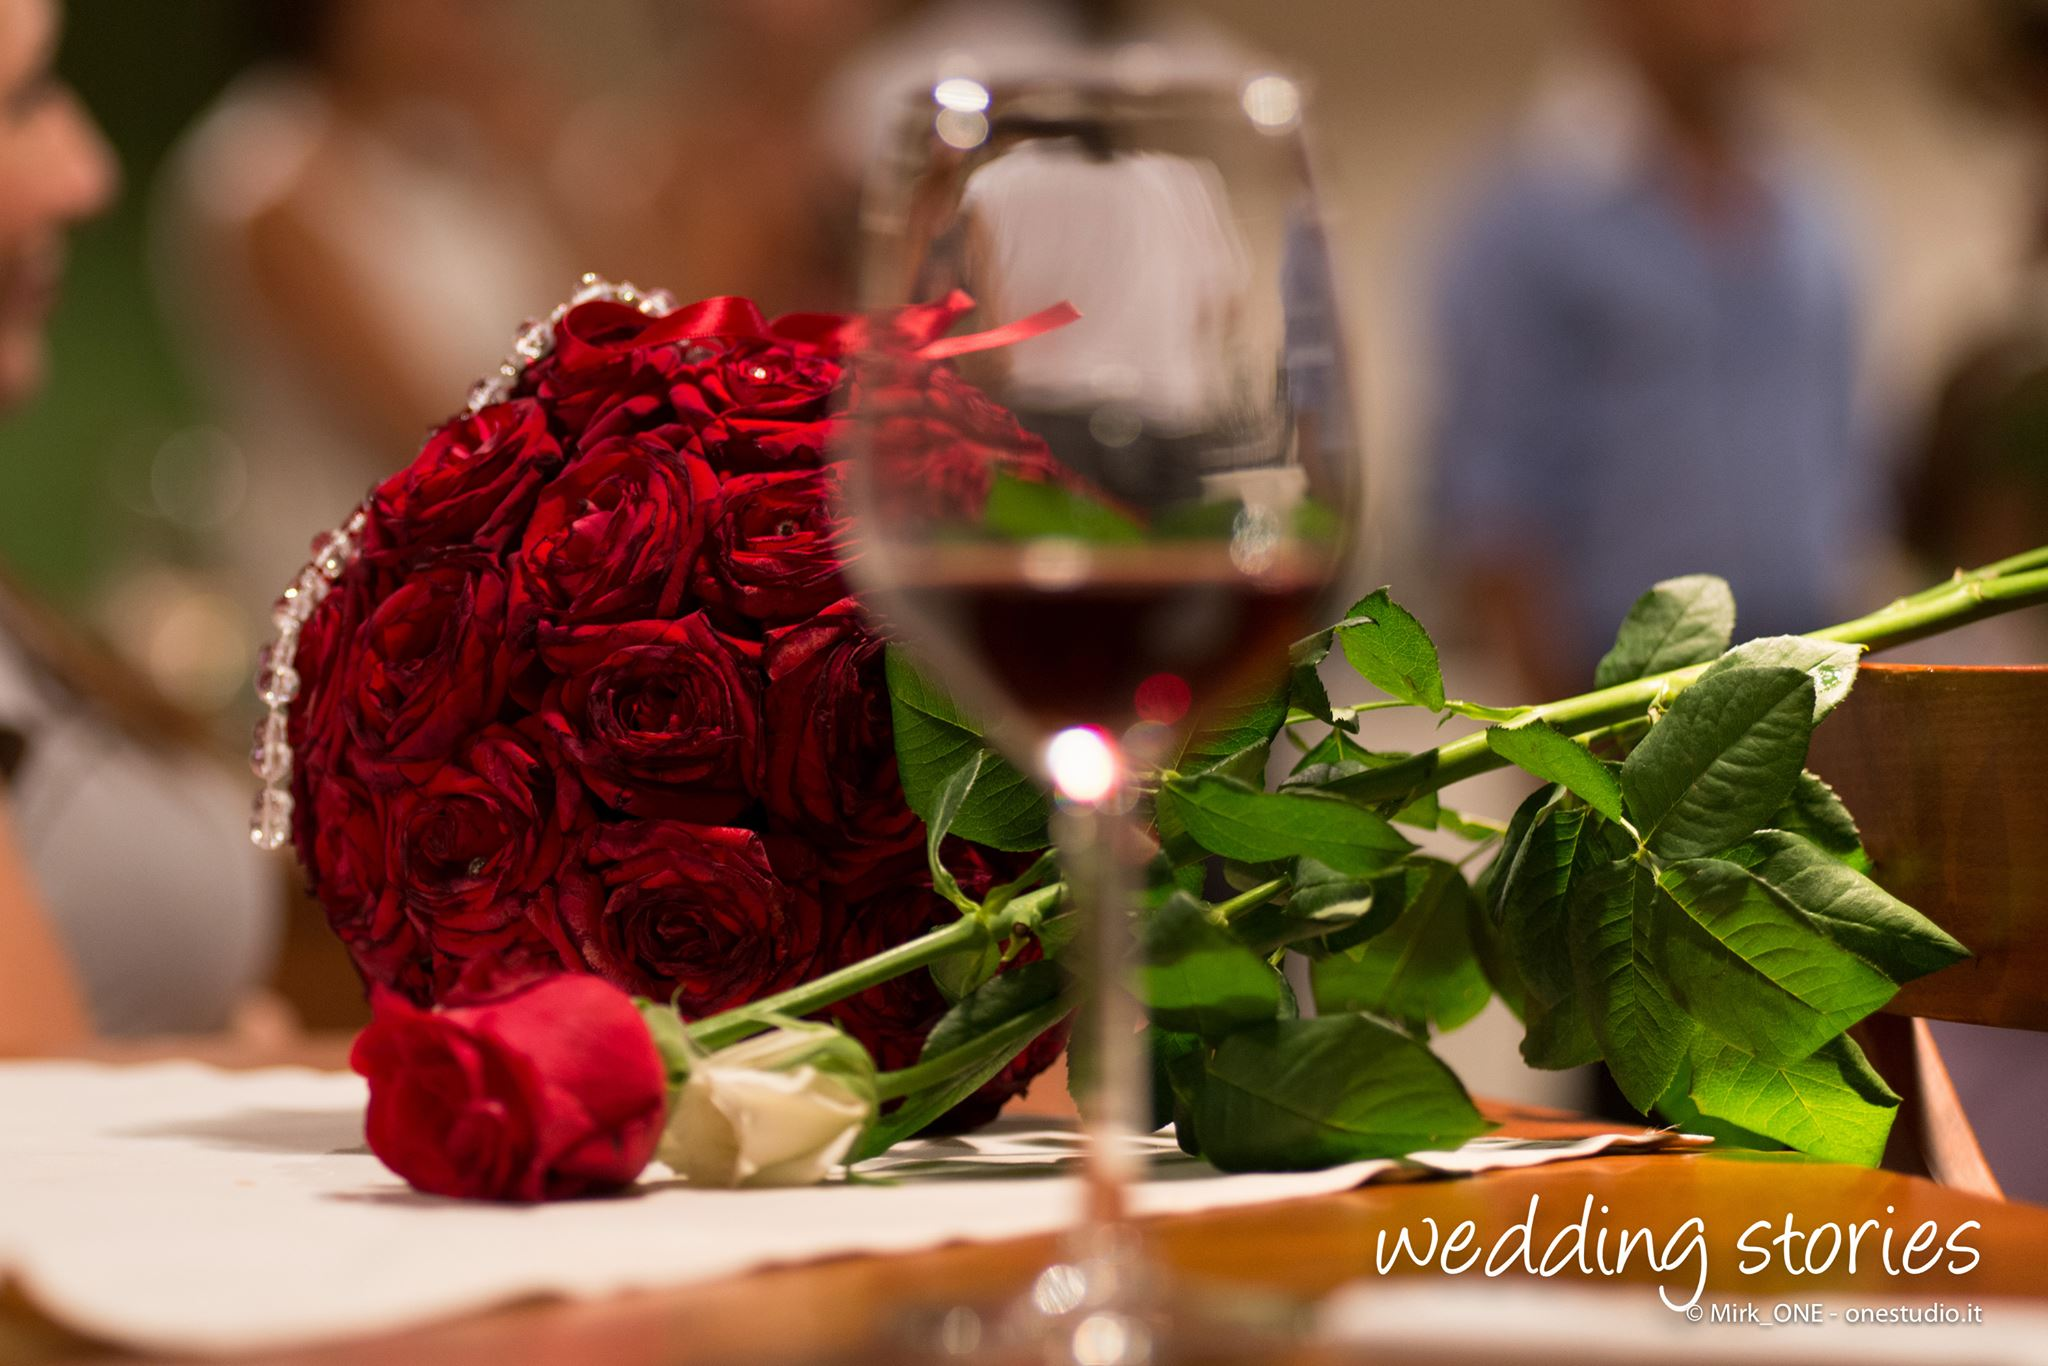 http://lnx.mirkone.it/wp-content/uploads/2015/07/mirk_ONE-fotografo-matrimonio-00905.jpg